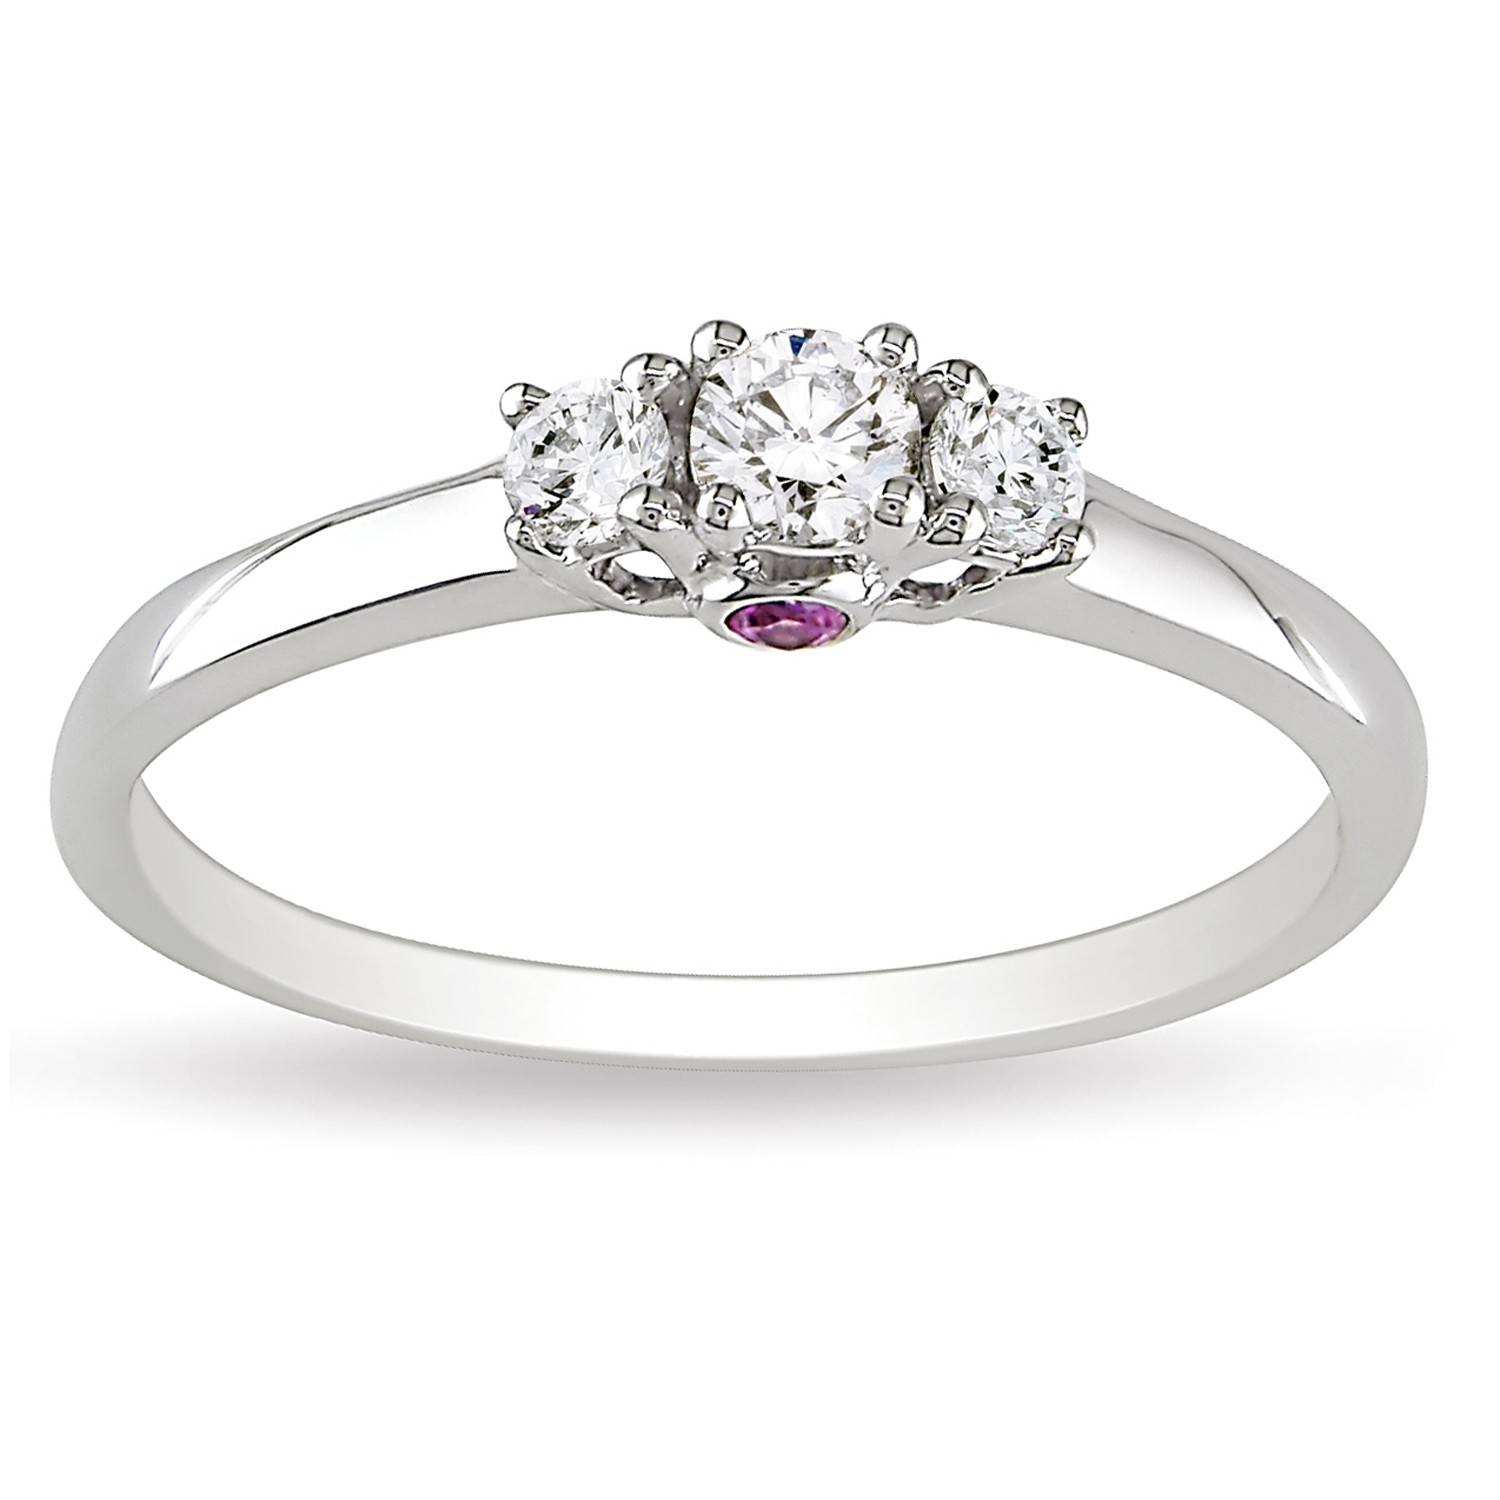 Luxurious Three Stone Trilogy Sapphire Affordable Three Stone With White Gold Trilogy Engagement Rings (View 11 of 15)